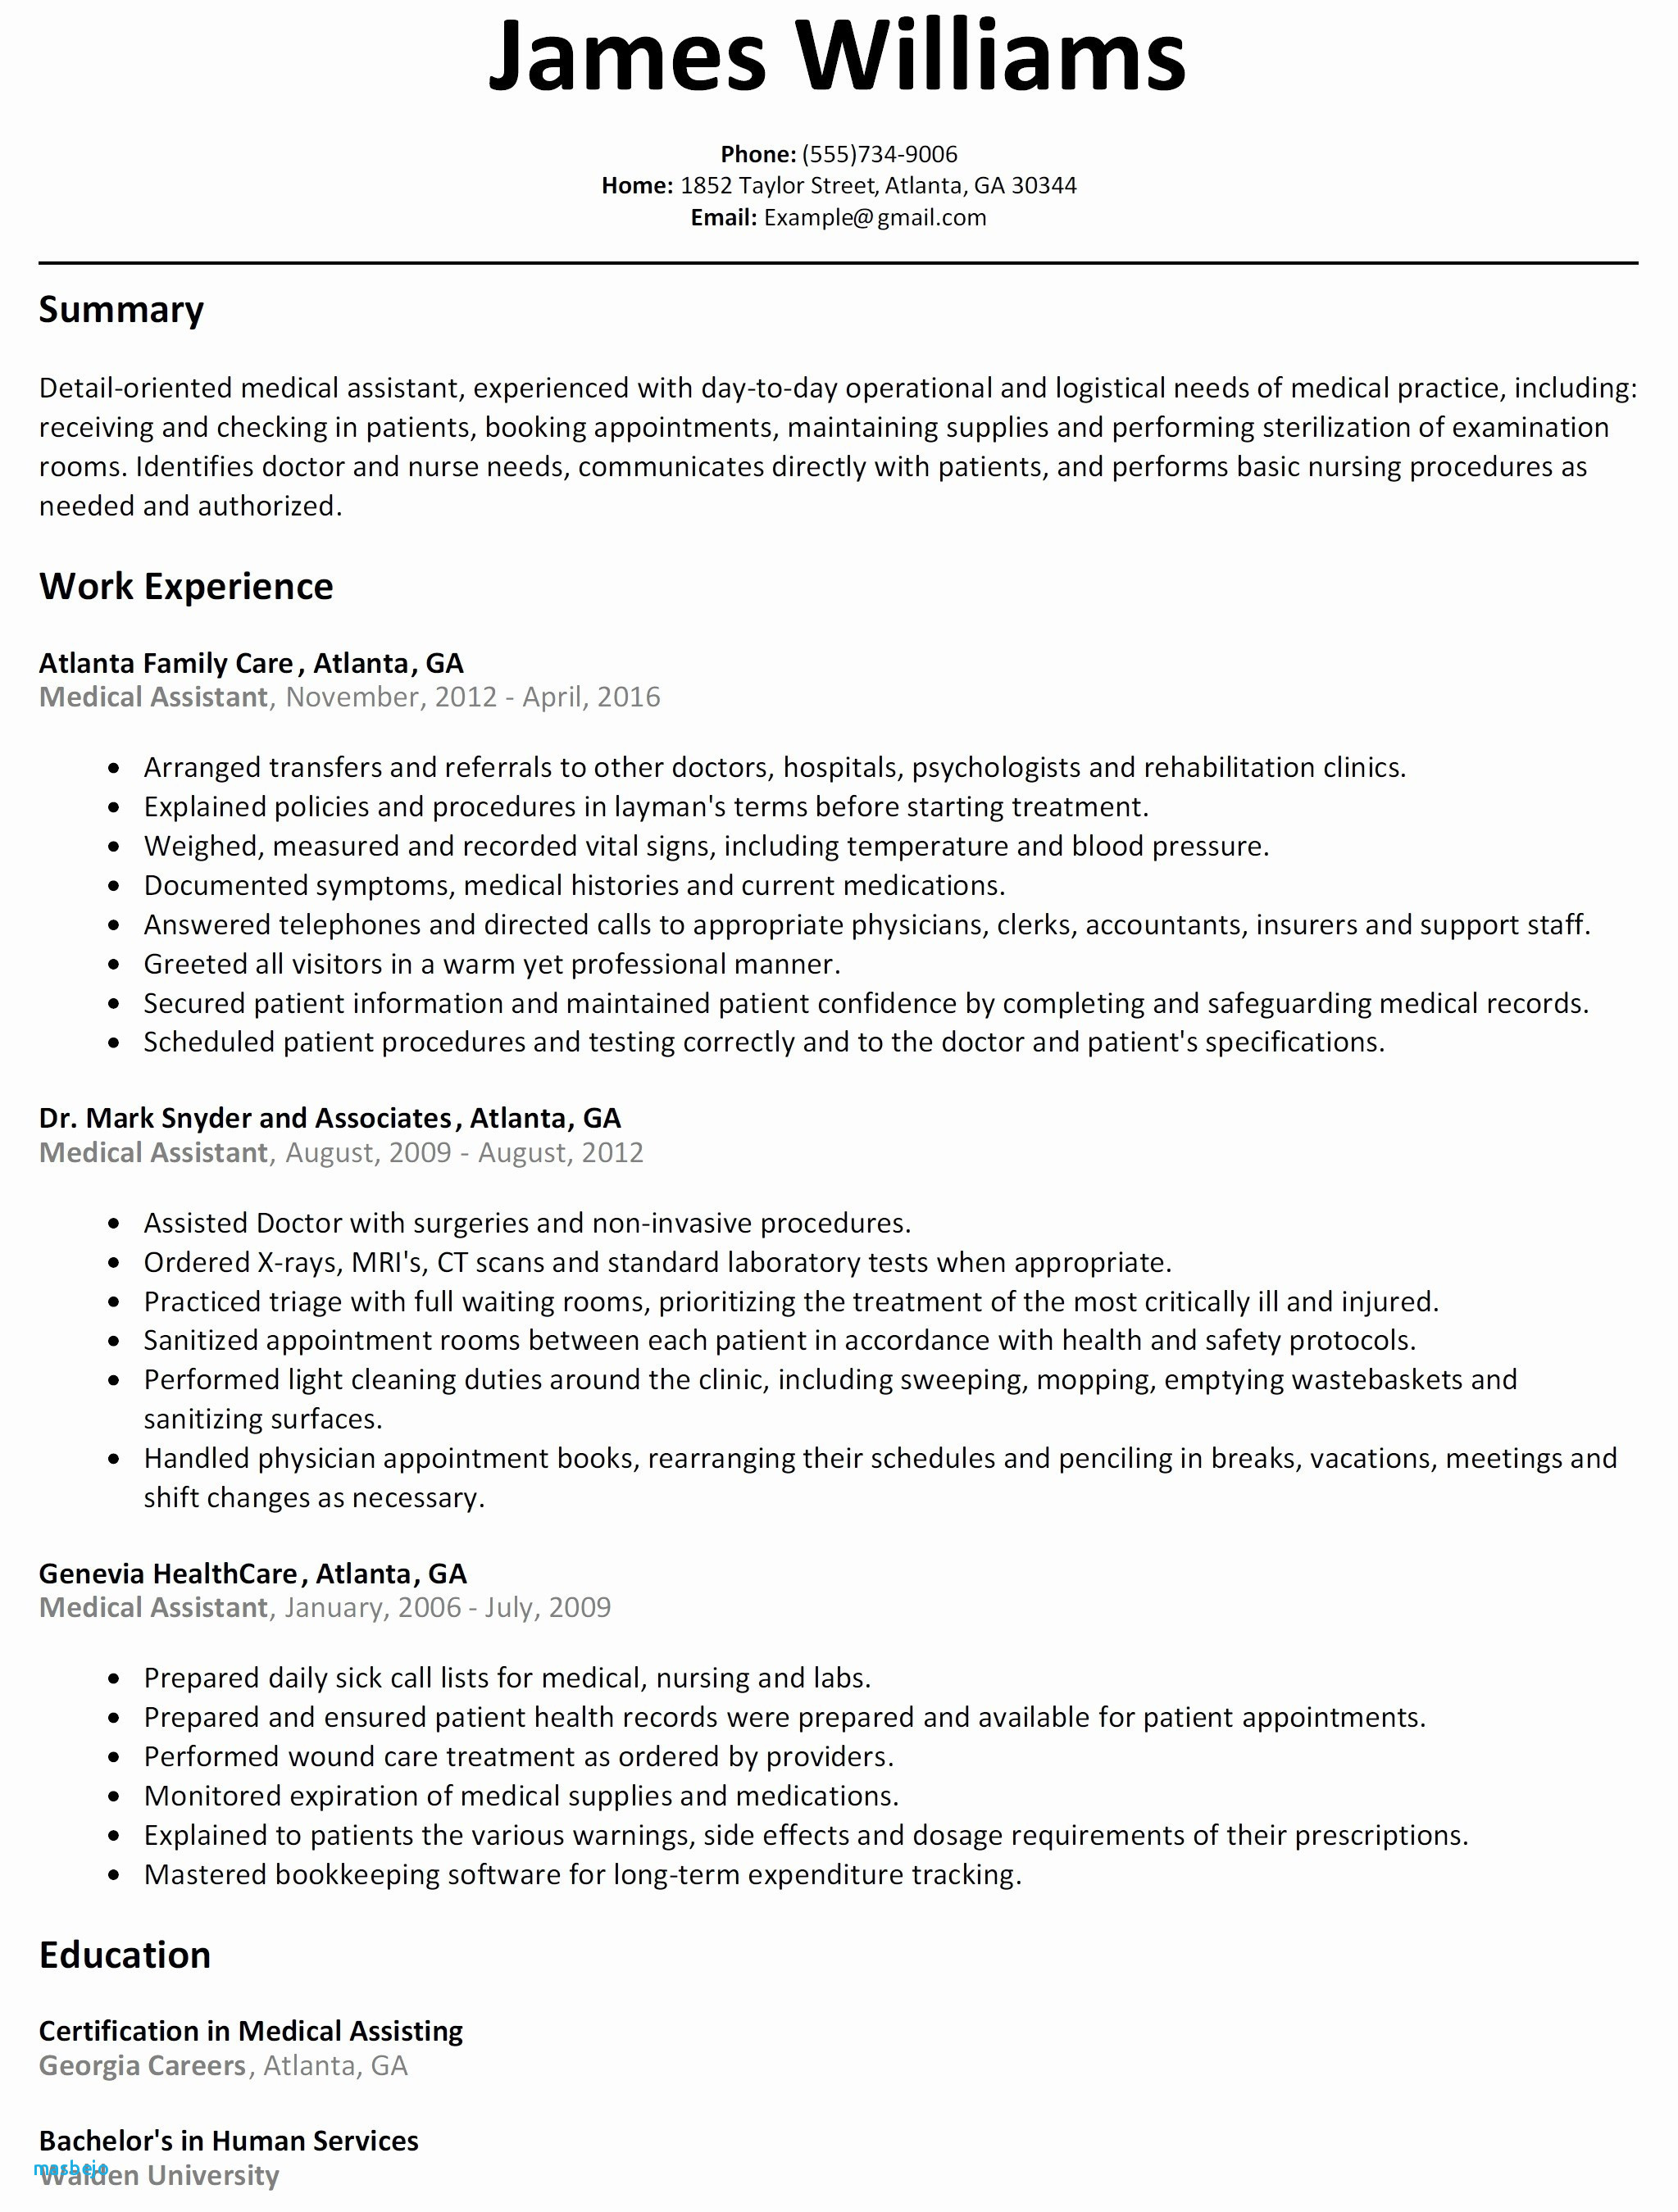 Resume Opening Statement Examples - Resume Opening Statement Examples Mechanic Resume Objective